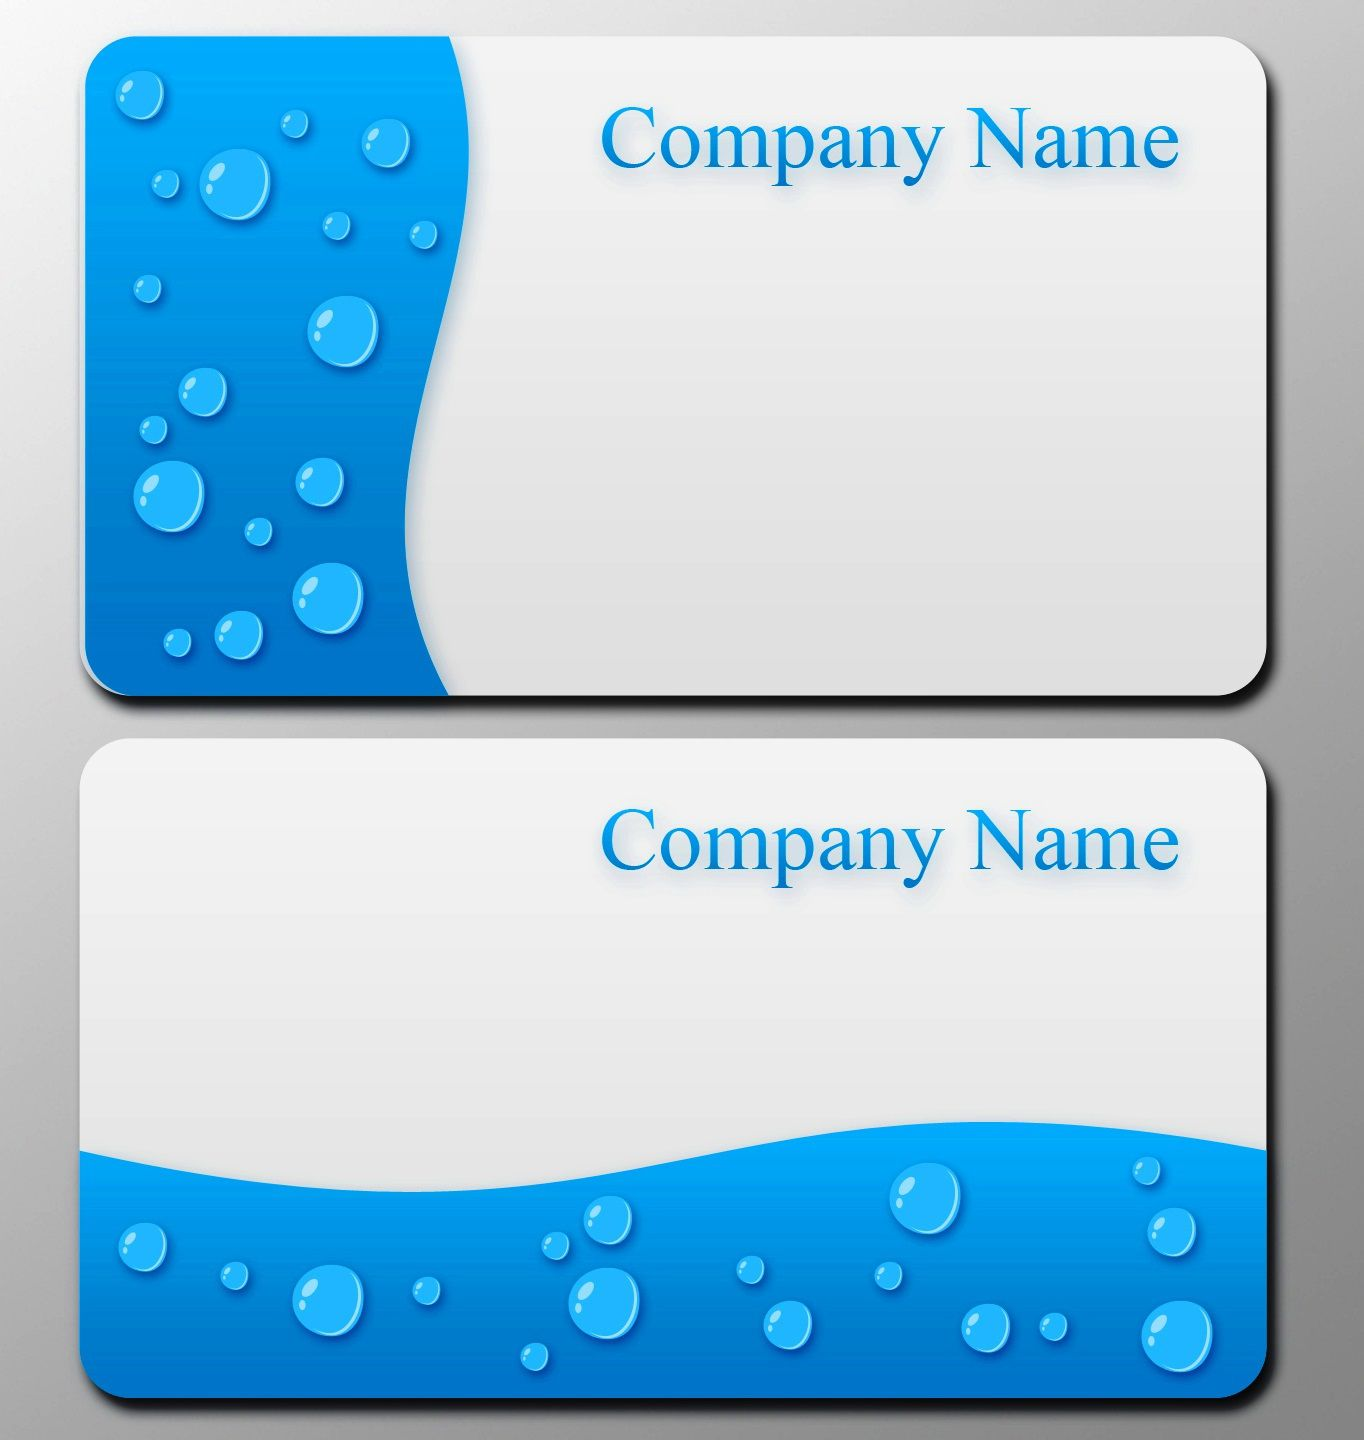 005 Imposing Free Blank Busines Card Template Photoshop High Def  Download PsdFull